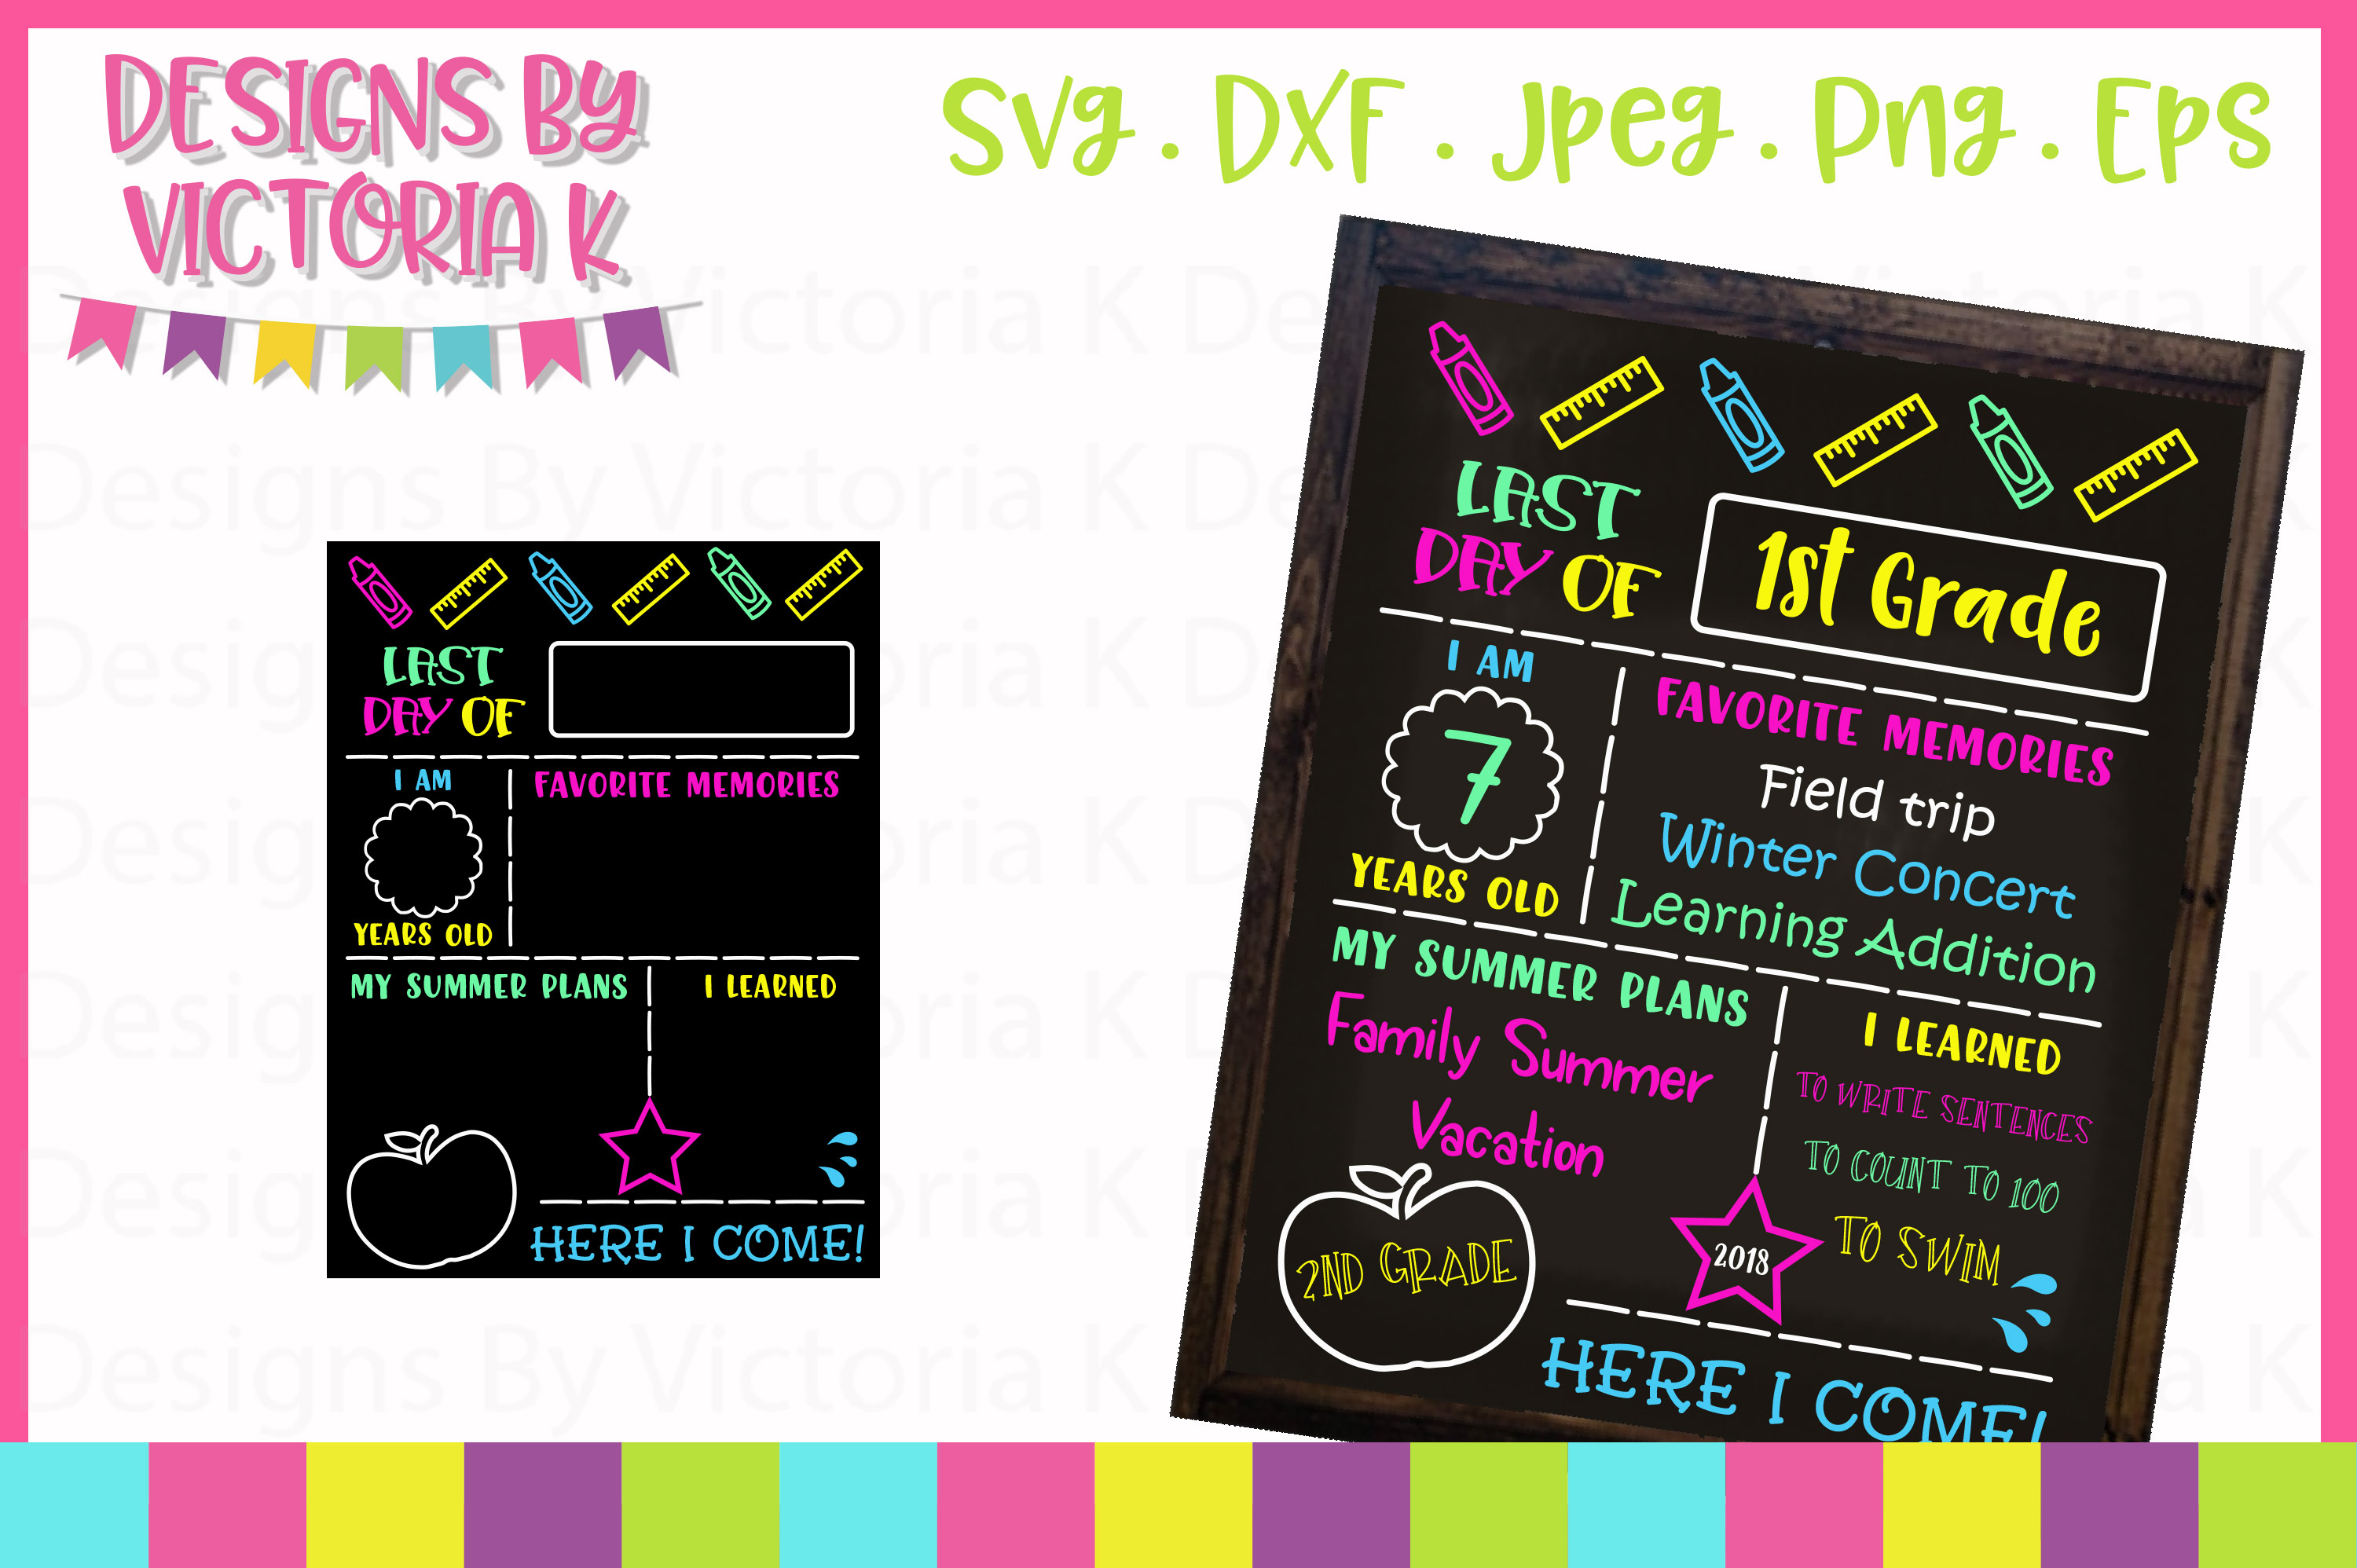 Last day of school board, chalkboard SVG, DXF, PNG example image 1